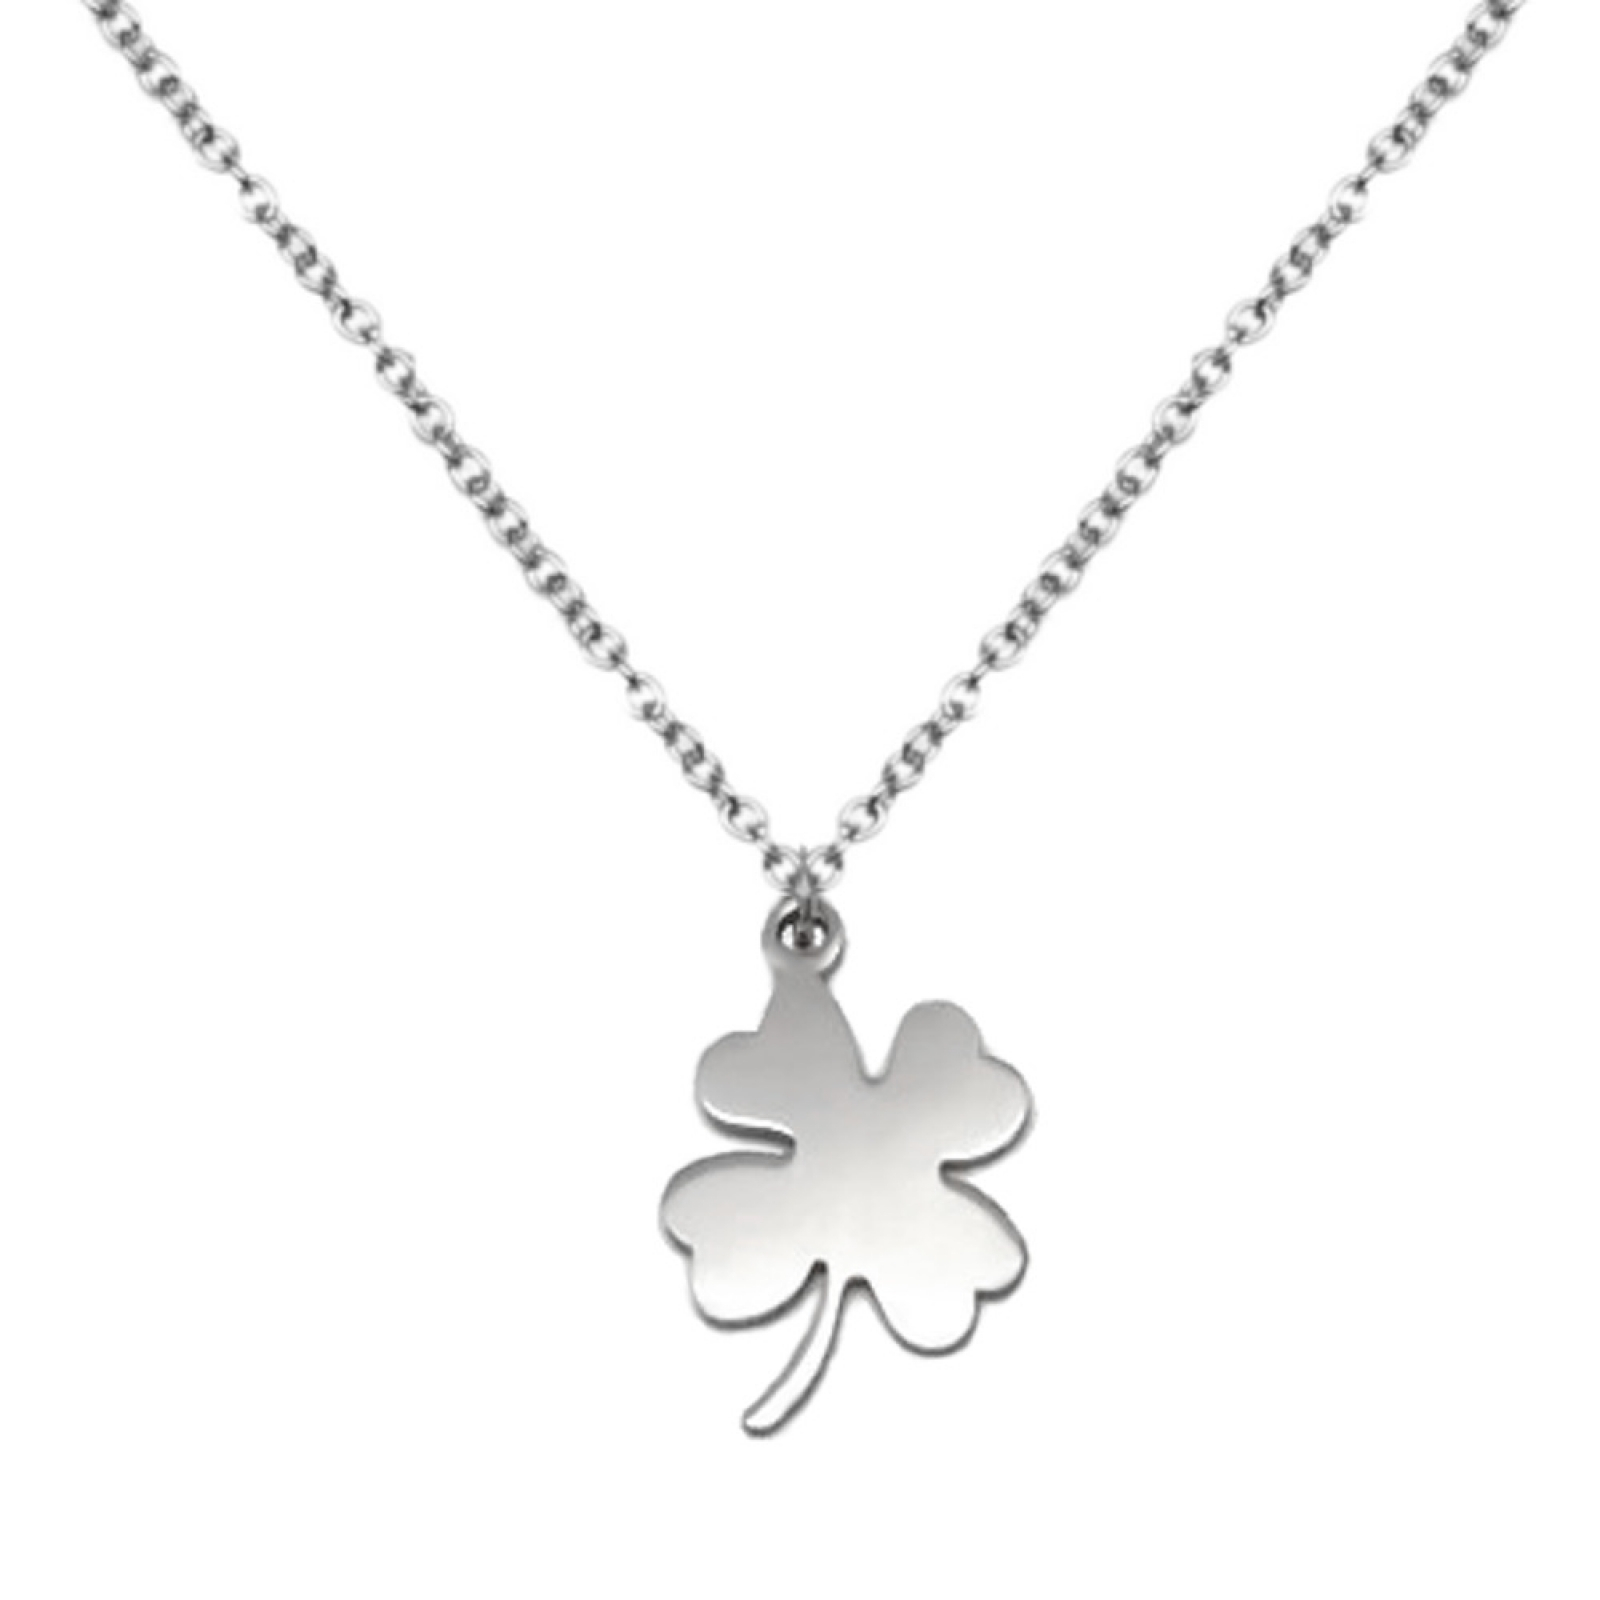 Luck Of The Irish Symbol Necklace For Her | Loralyn Designs Throughout Best And Newest Lucky Four Leaf Clover Pendant Necklaces (View 4 of 25)